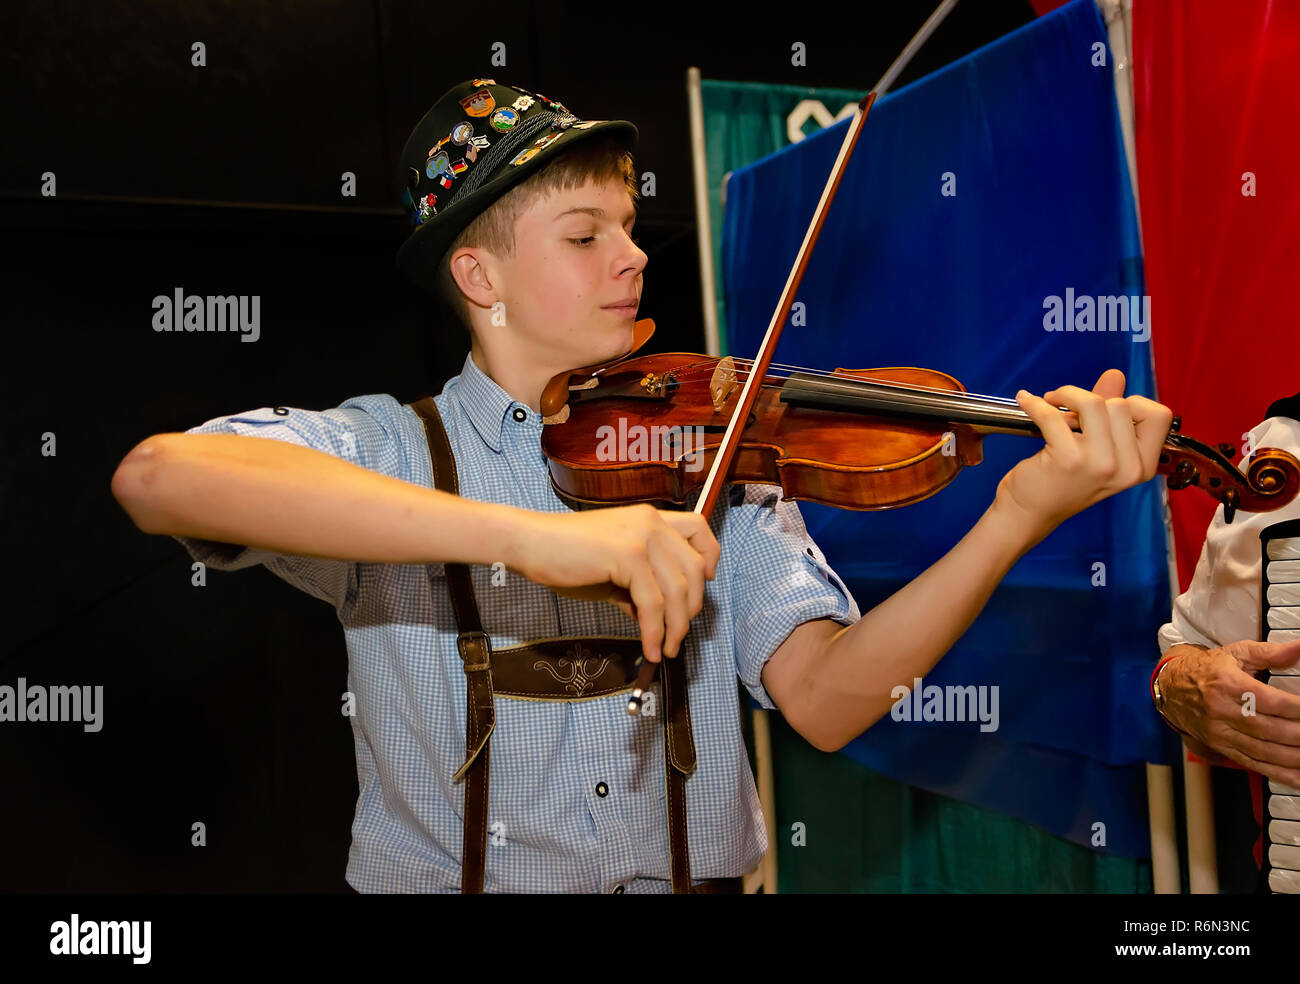 A young musician plays violin at the 34th annual Mobile International Festival, Nov. 17, 2018, in Mobile, Alabama. - Stock Image